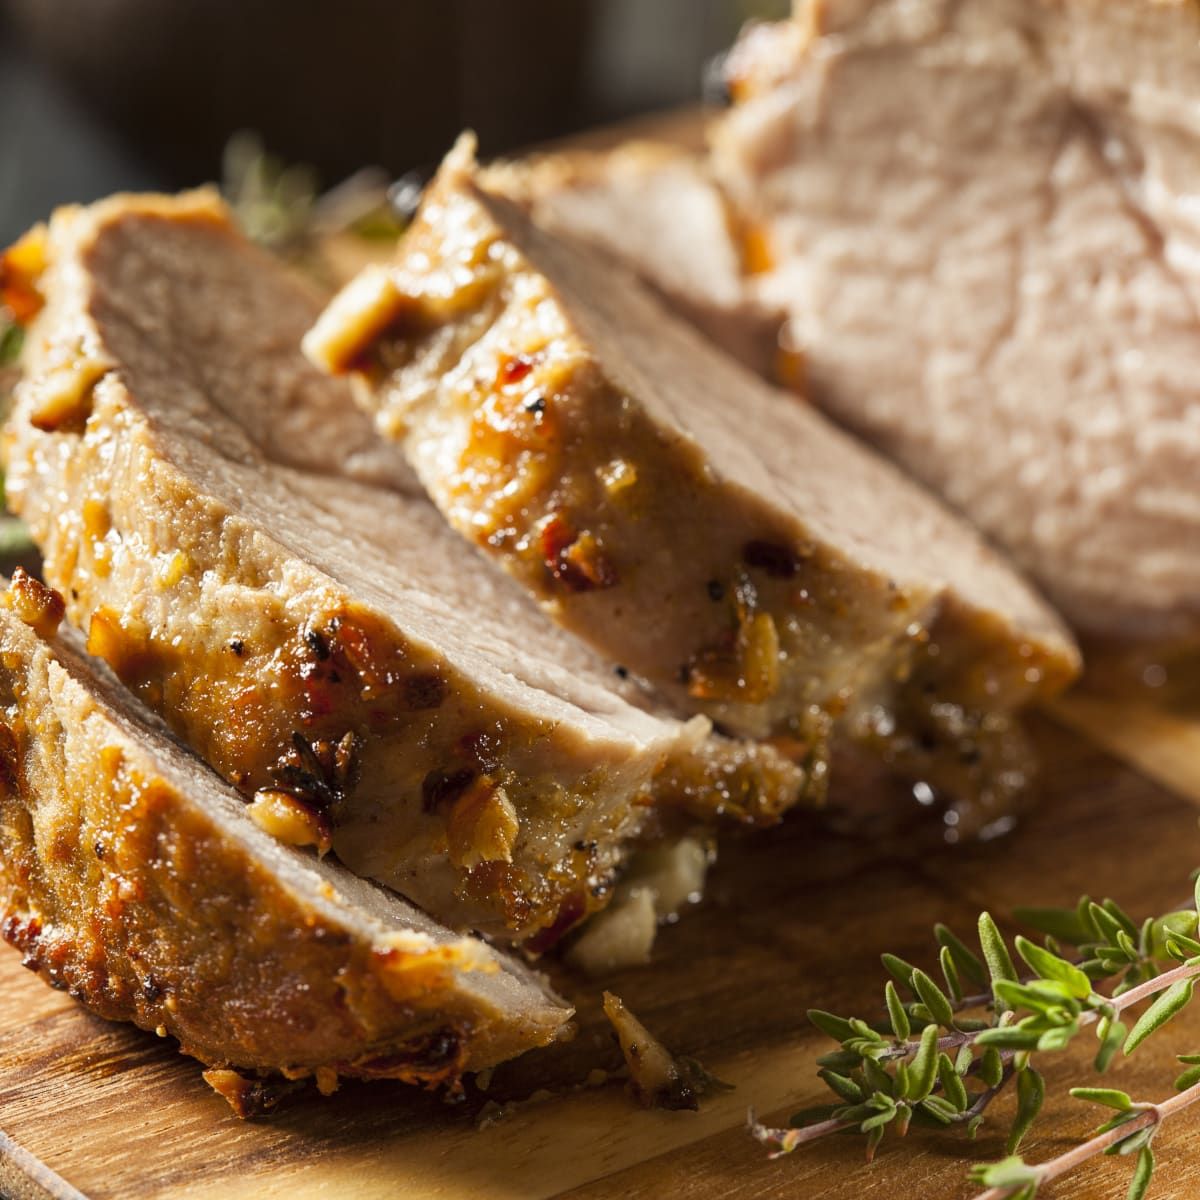 Carved Instant Pot Pork Roast. Juicy, tender slice with herbs and spices on the edges.